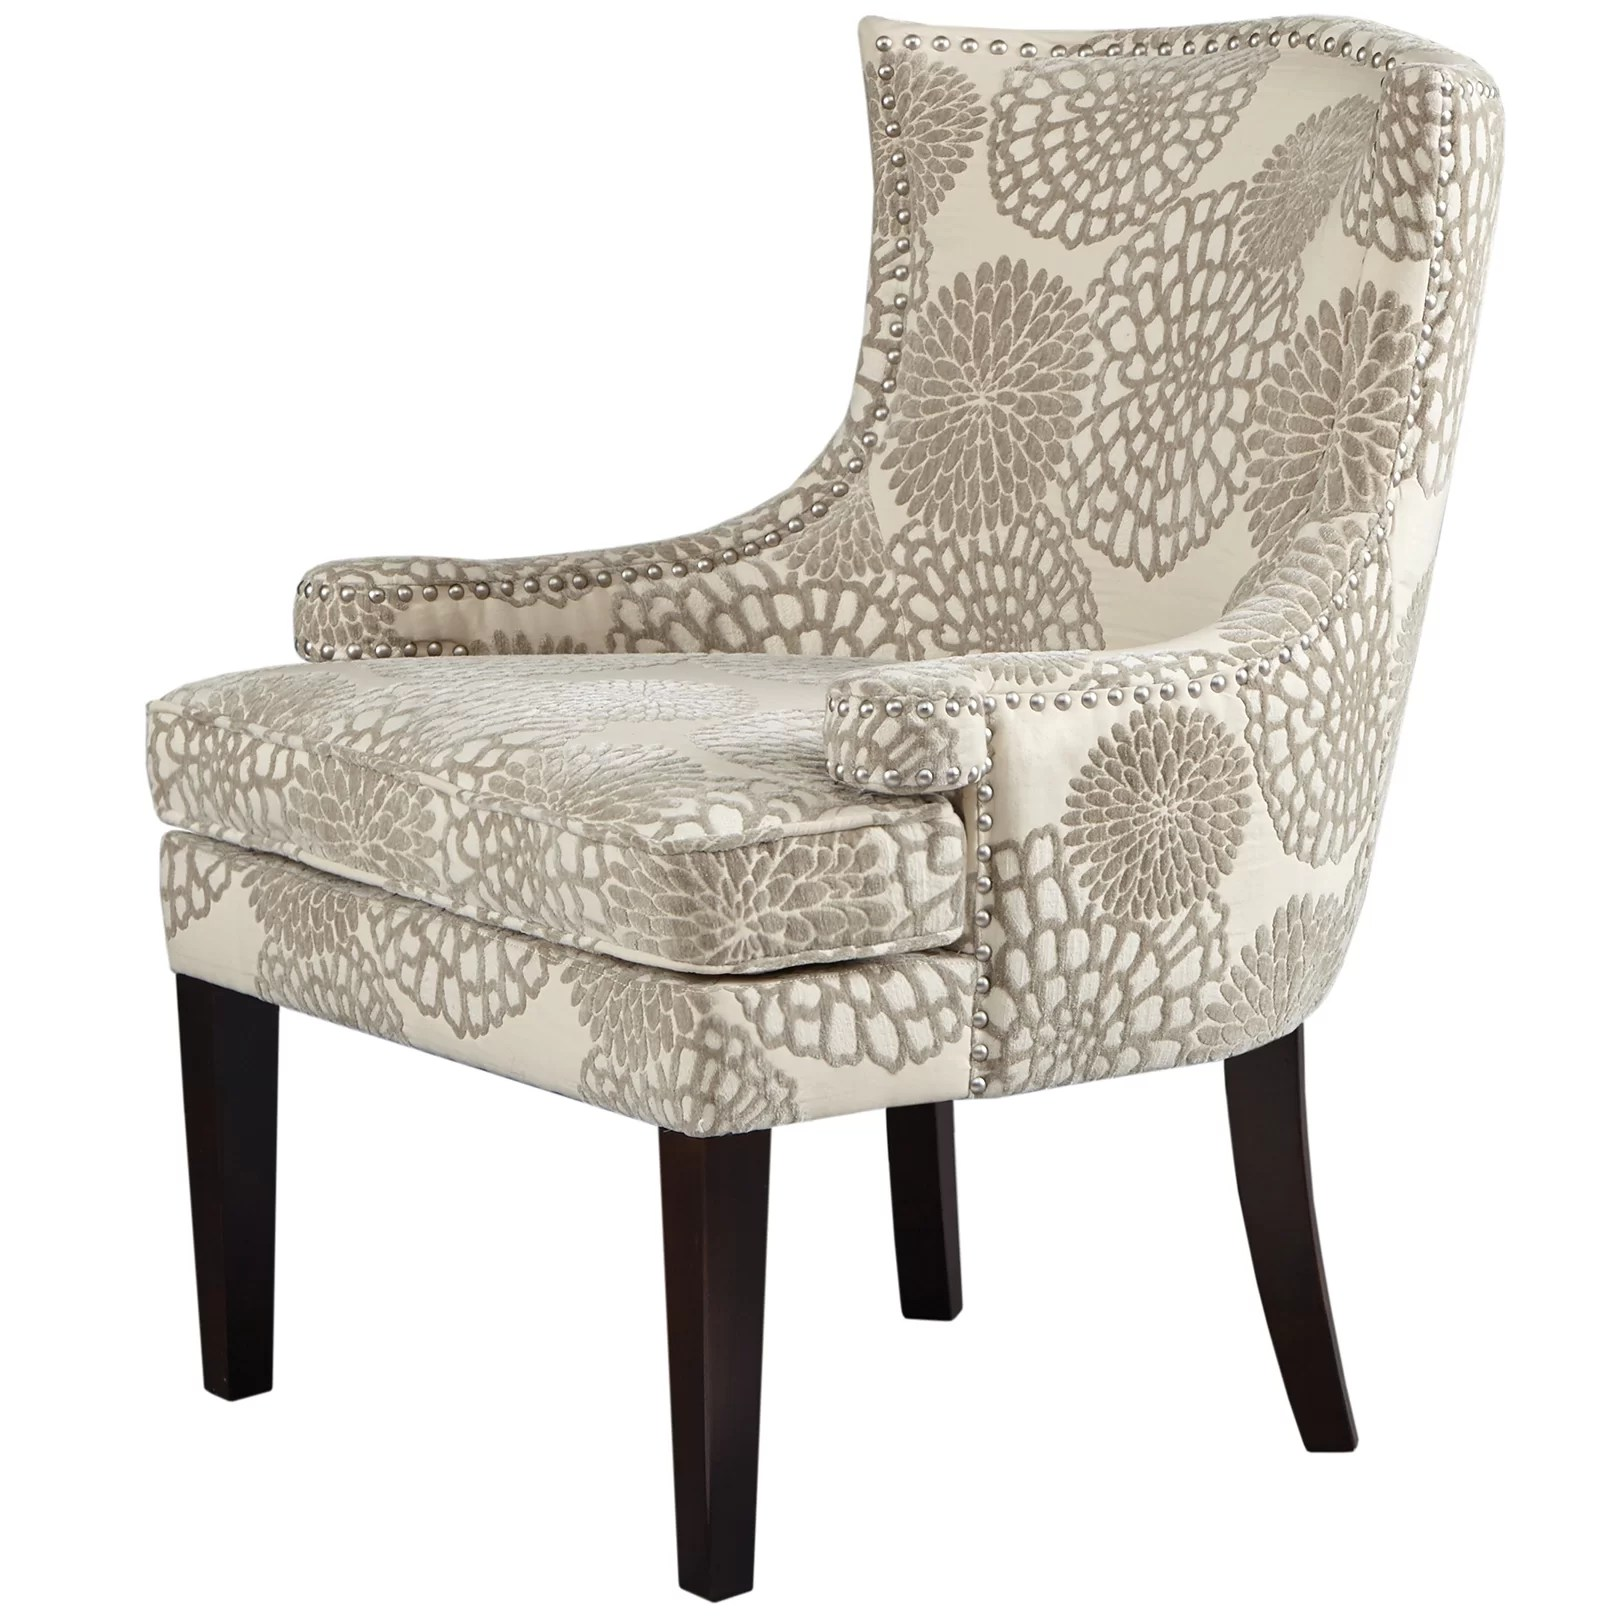 Floral Chairs Madison Park Signature Floral Wingback Chair Wayfair